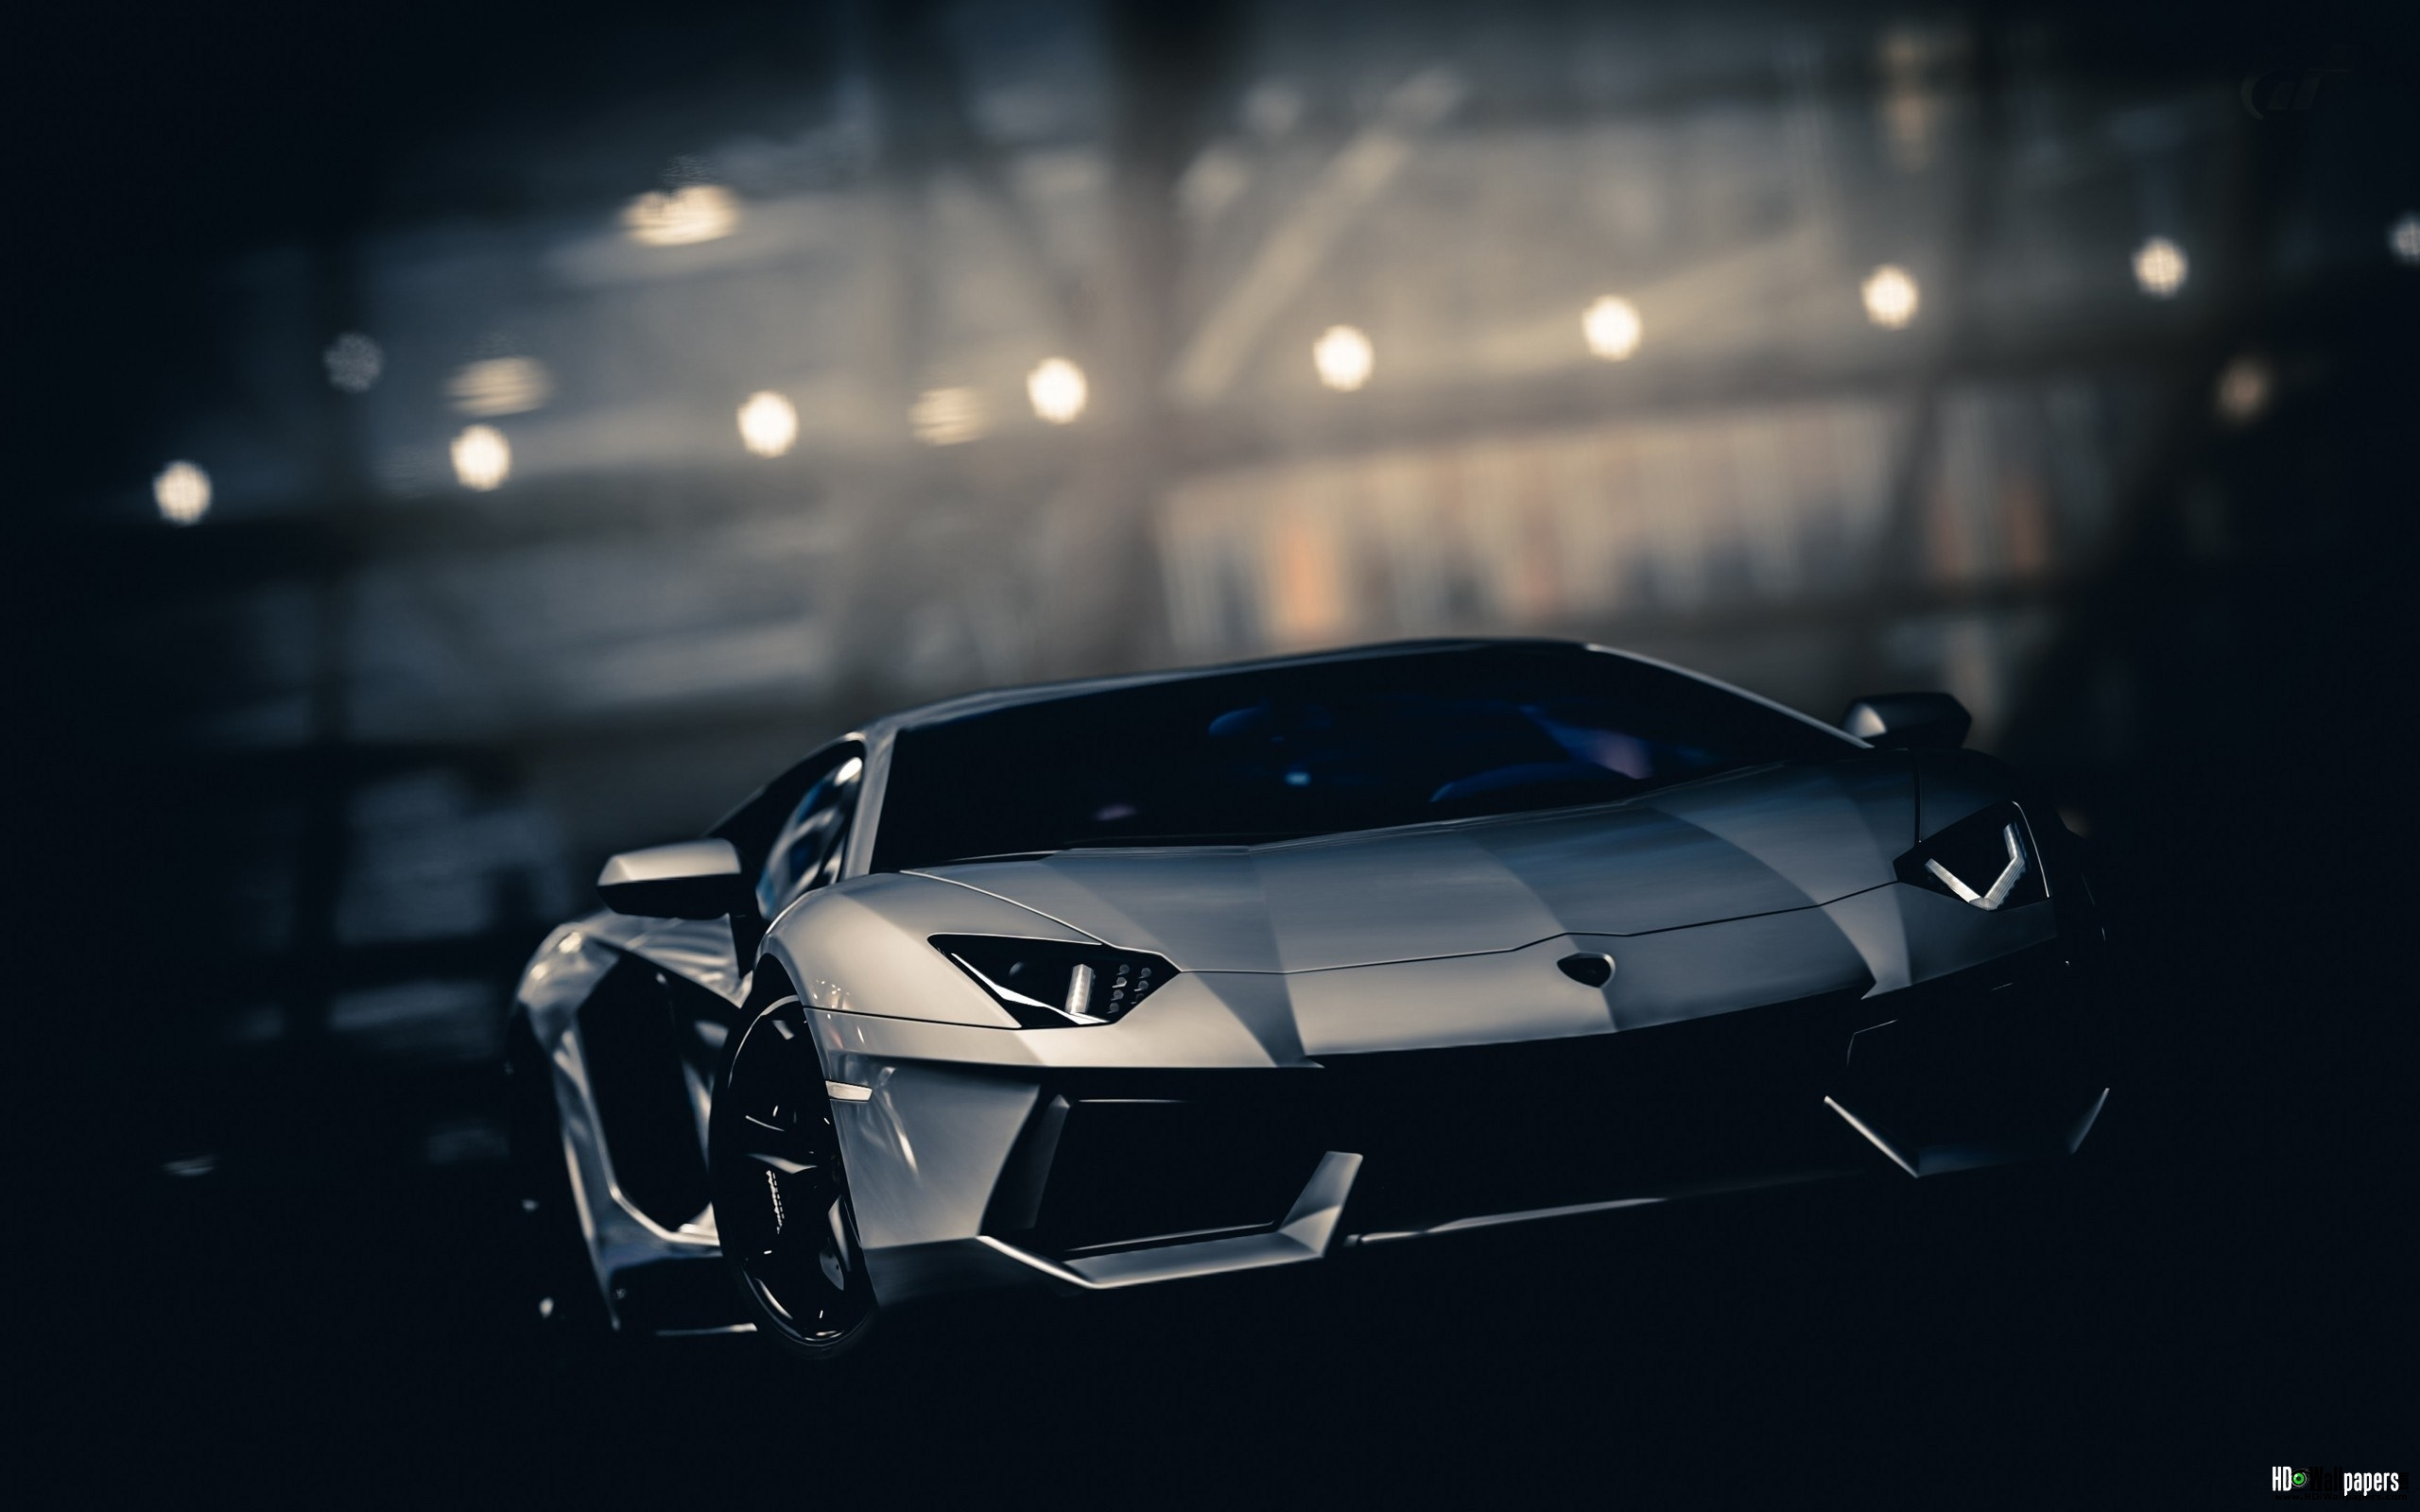 Cars Wallpapers HD Download for Desktop 01 HD Wallpapers 2560x1600